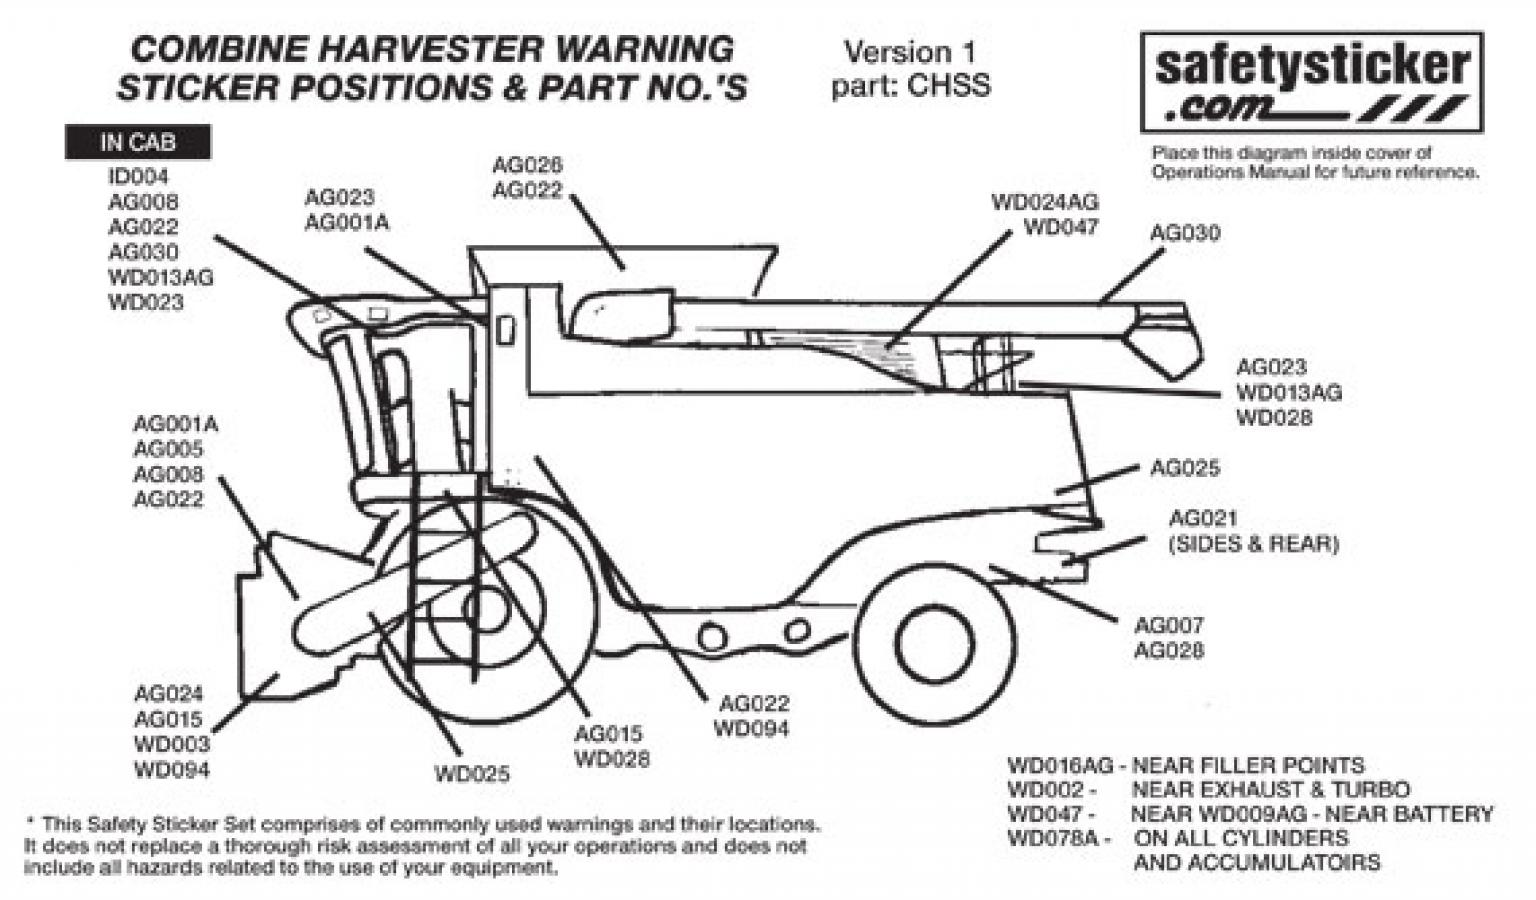 Parts Of A John Deere Combine Harvester Diagram : Combine harvester header safety sheet sticker